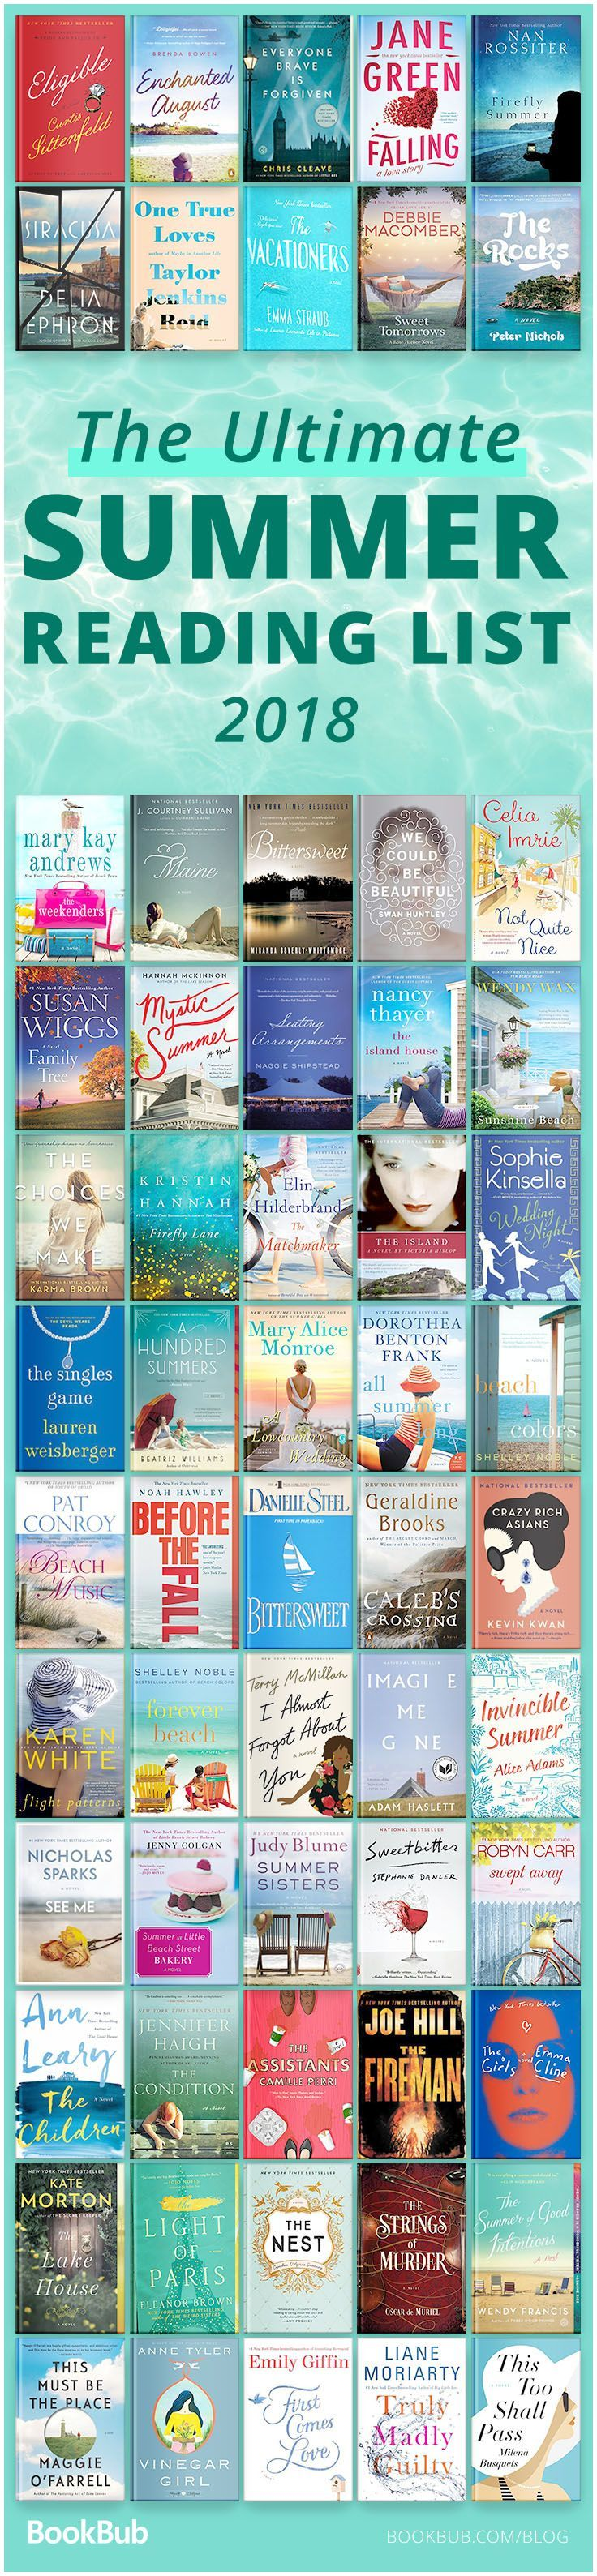 Book Club Books 2019 the Ultimate List Of Beach Reads In 2019 Books for Women